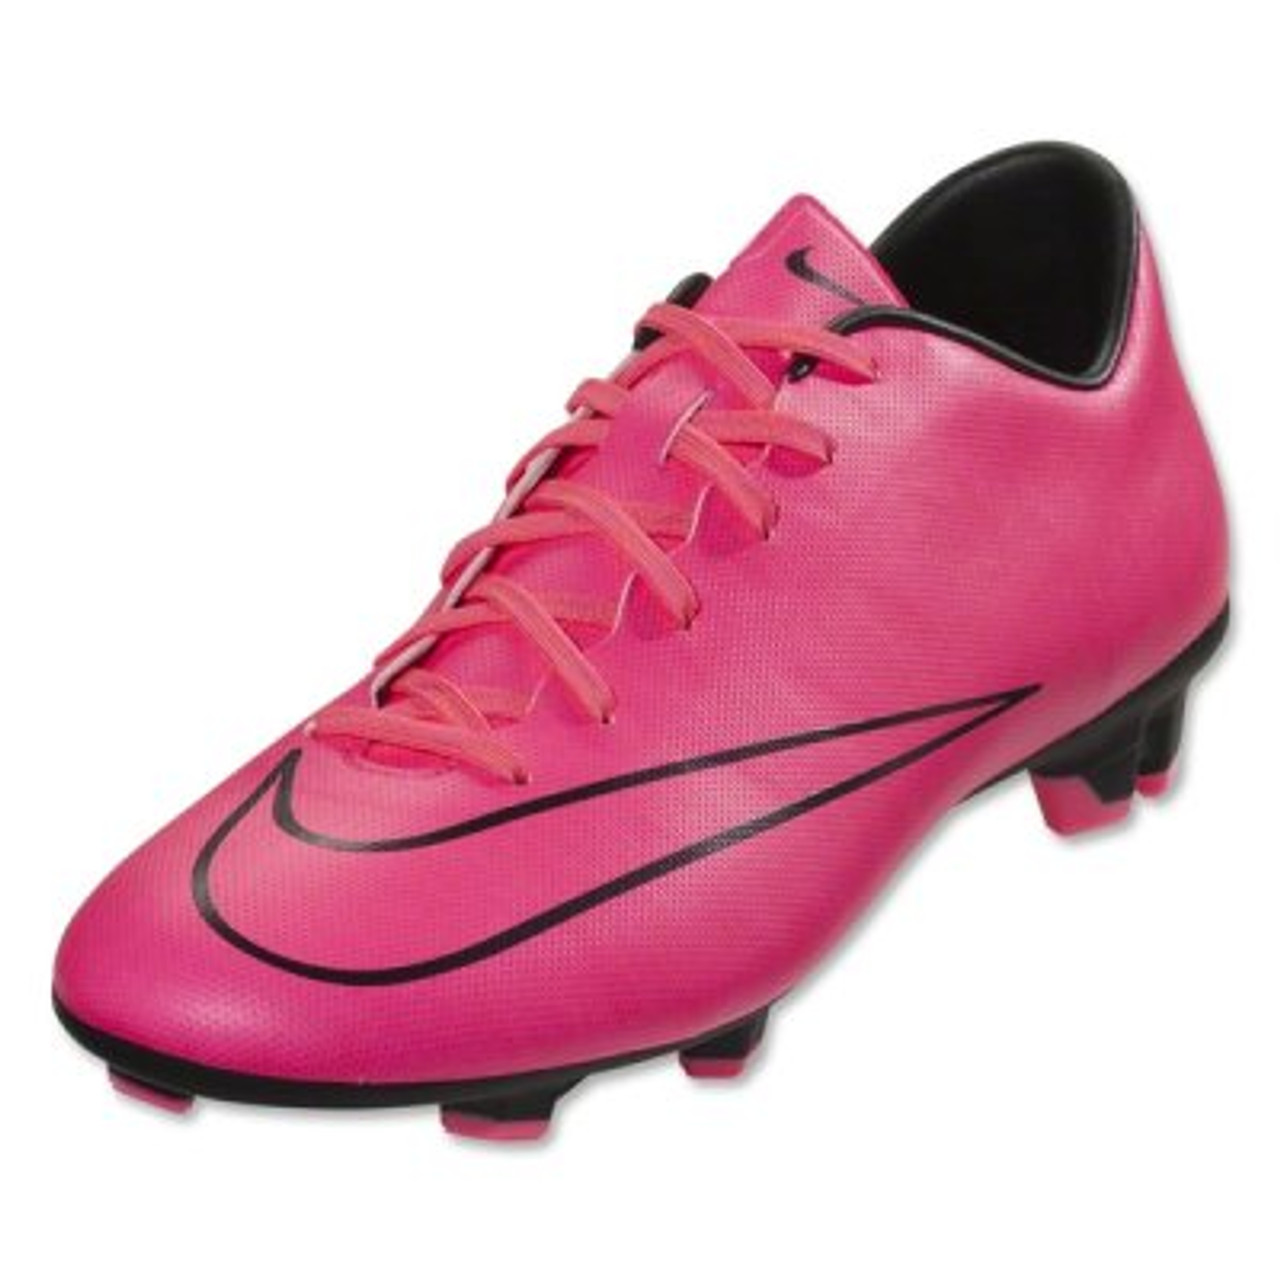 the best attitude 69110 8a033 Nike Mercurial Victory V FG - Hyper Pink/Black (052519)